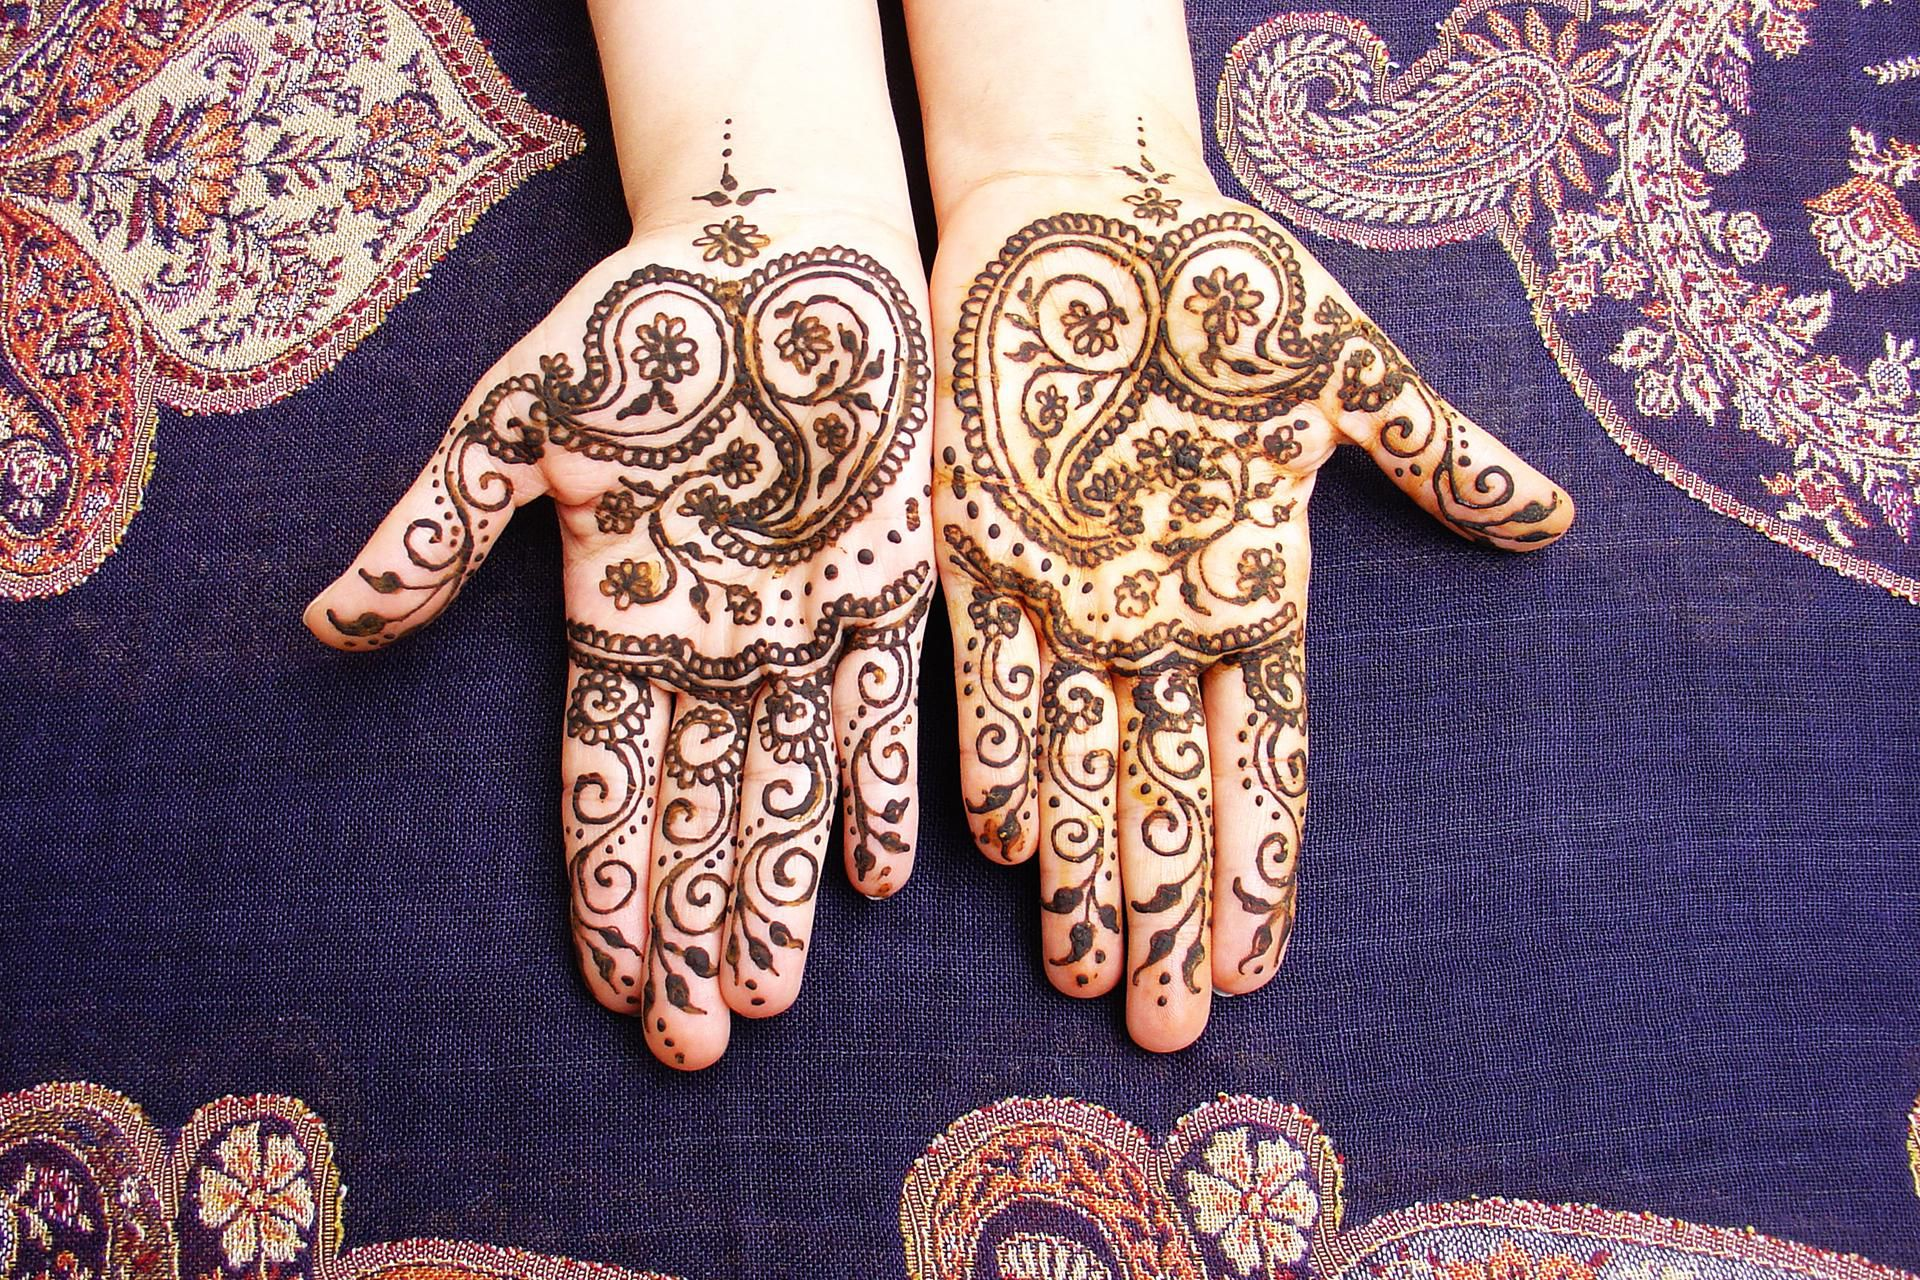 Henna Tattoo What Is It: What Is Henna And Is It Safe For My Teen?